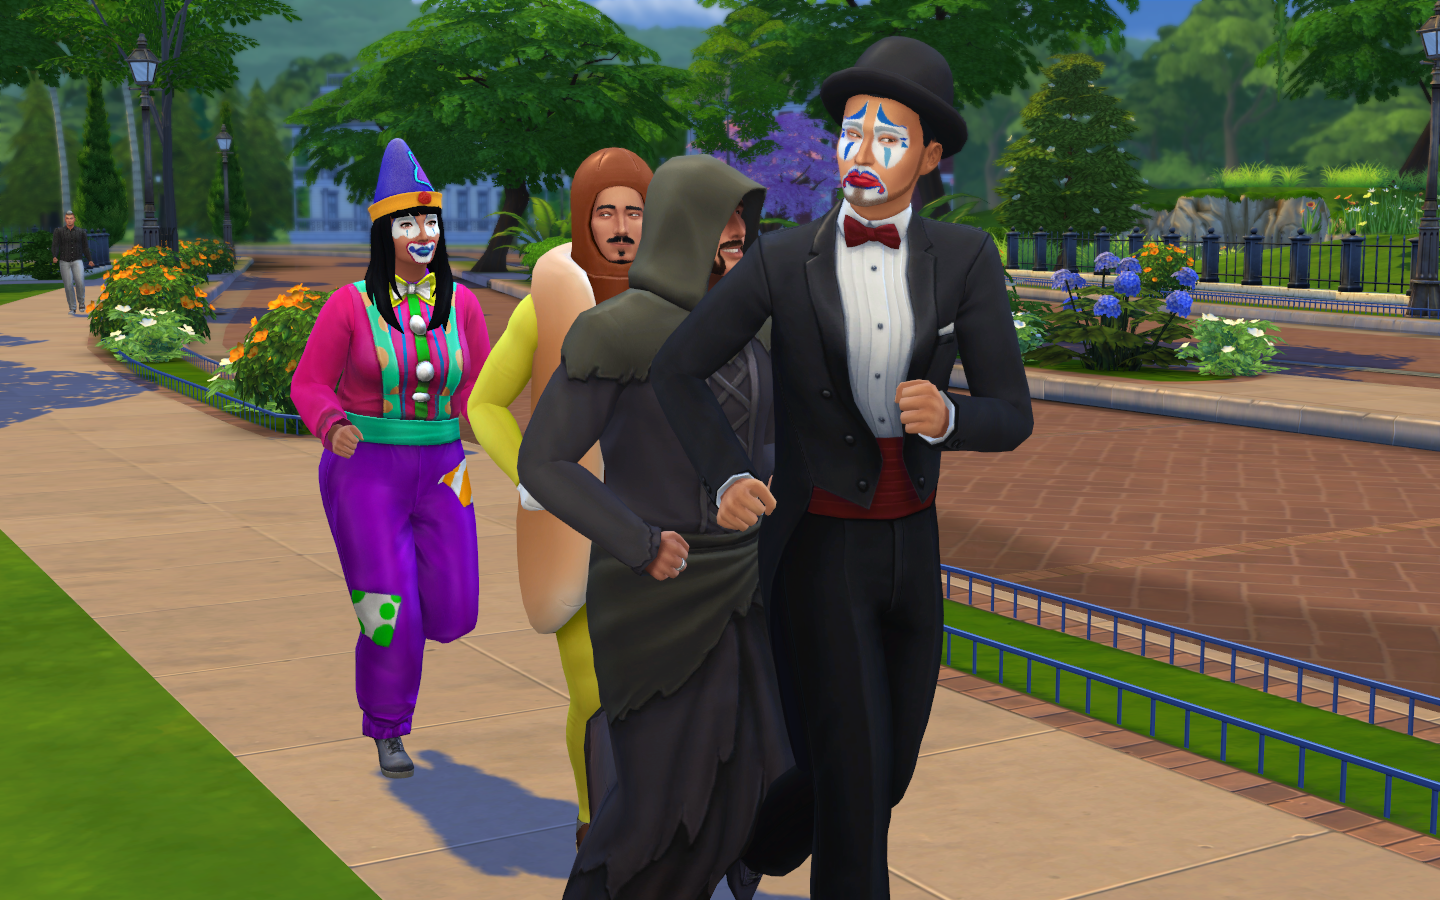 The Sims 4 Digital Deluxe Edition Content Overview Simcitizens